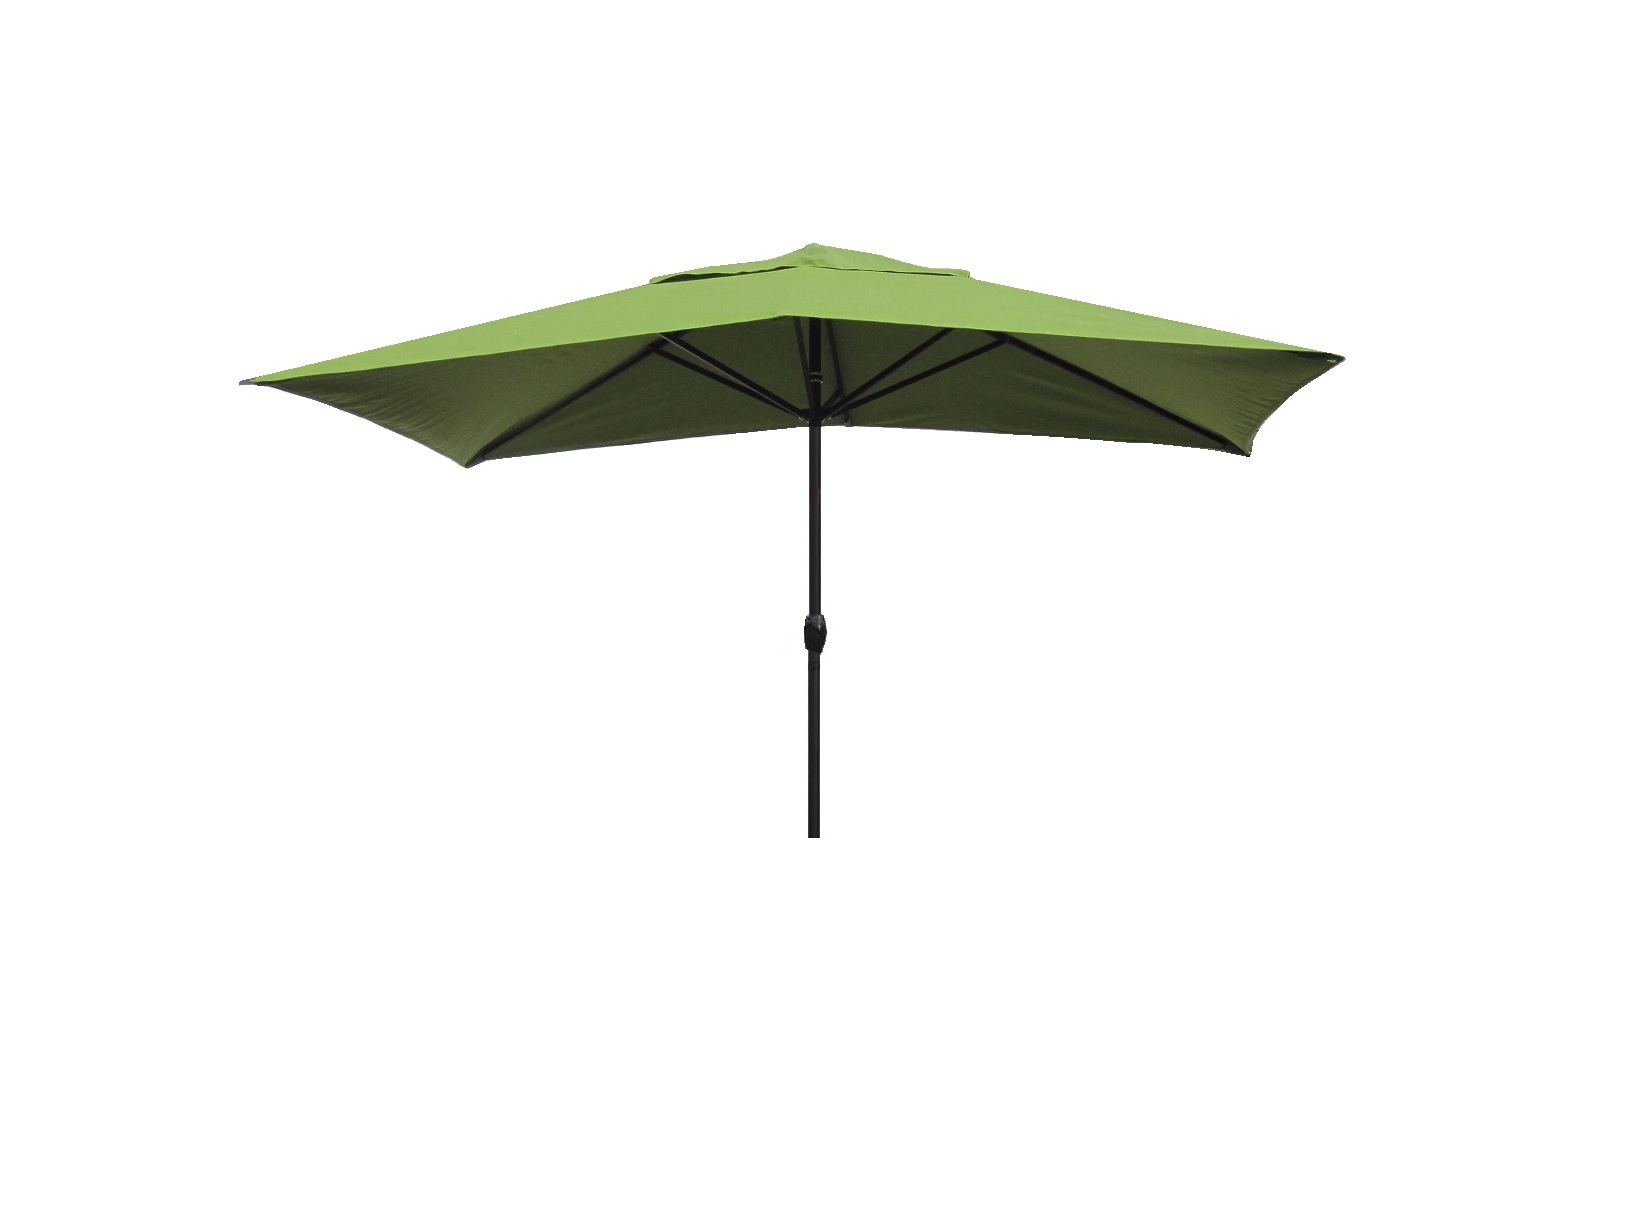 Genial Escada Designs Lime Green Rectangular 10 Foot X 6 Foot Patio Umbrella